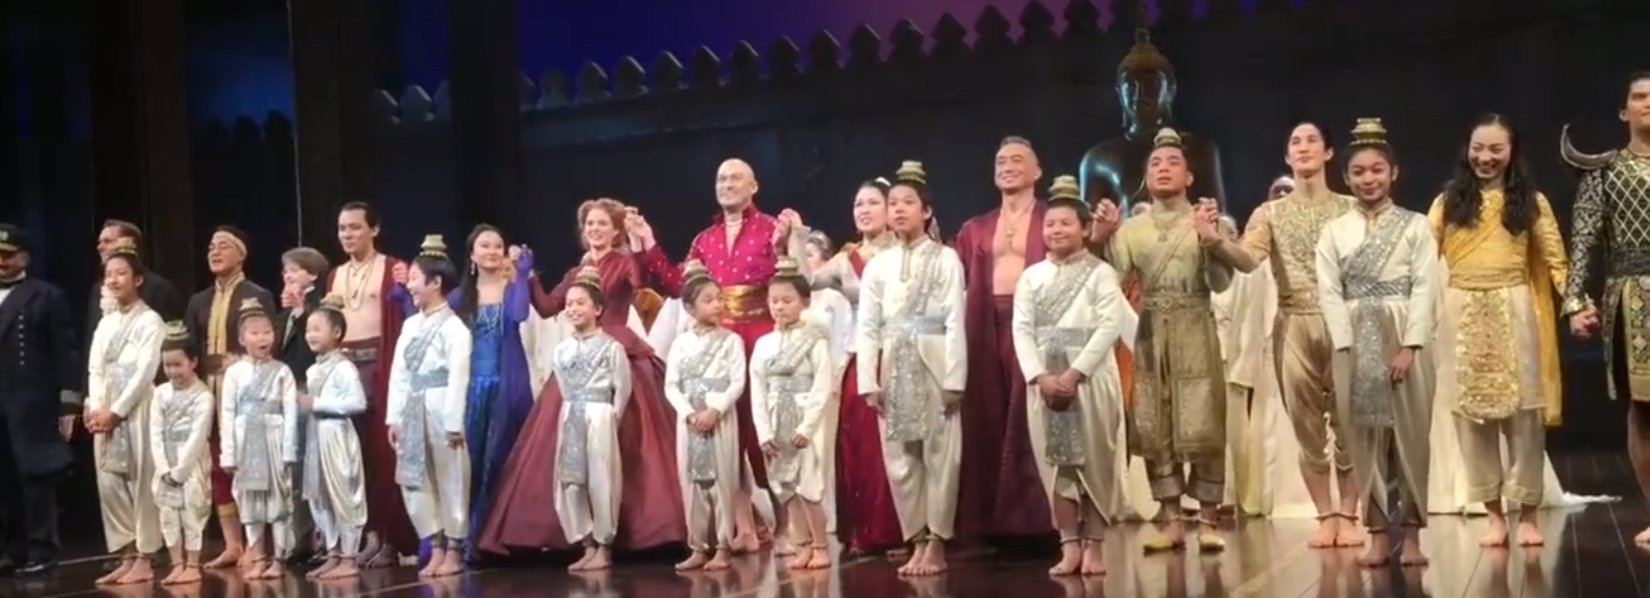 THE KING AND I curtain call